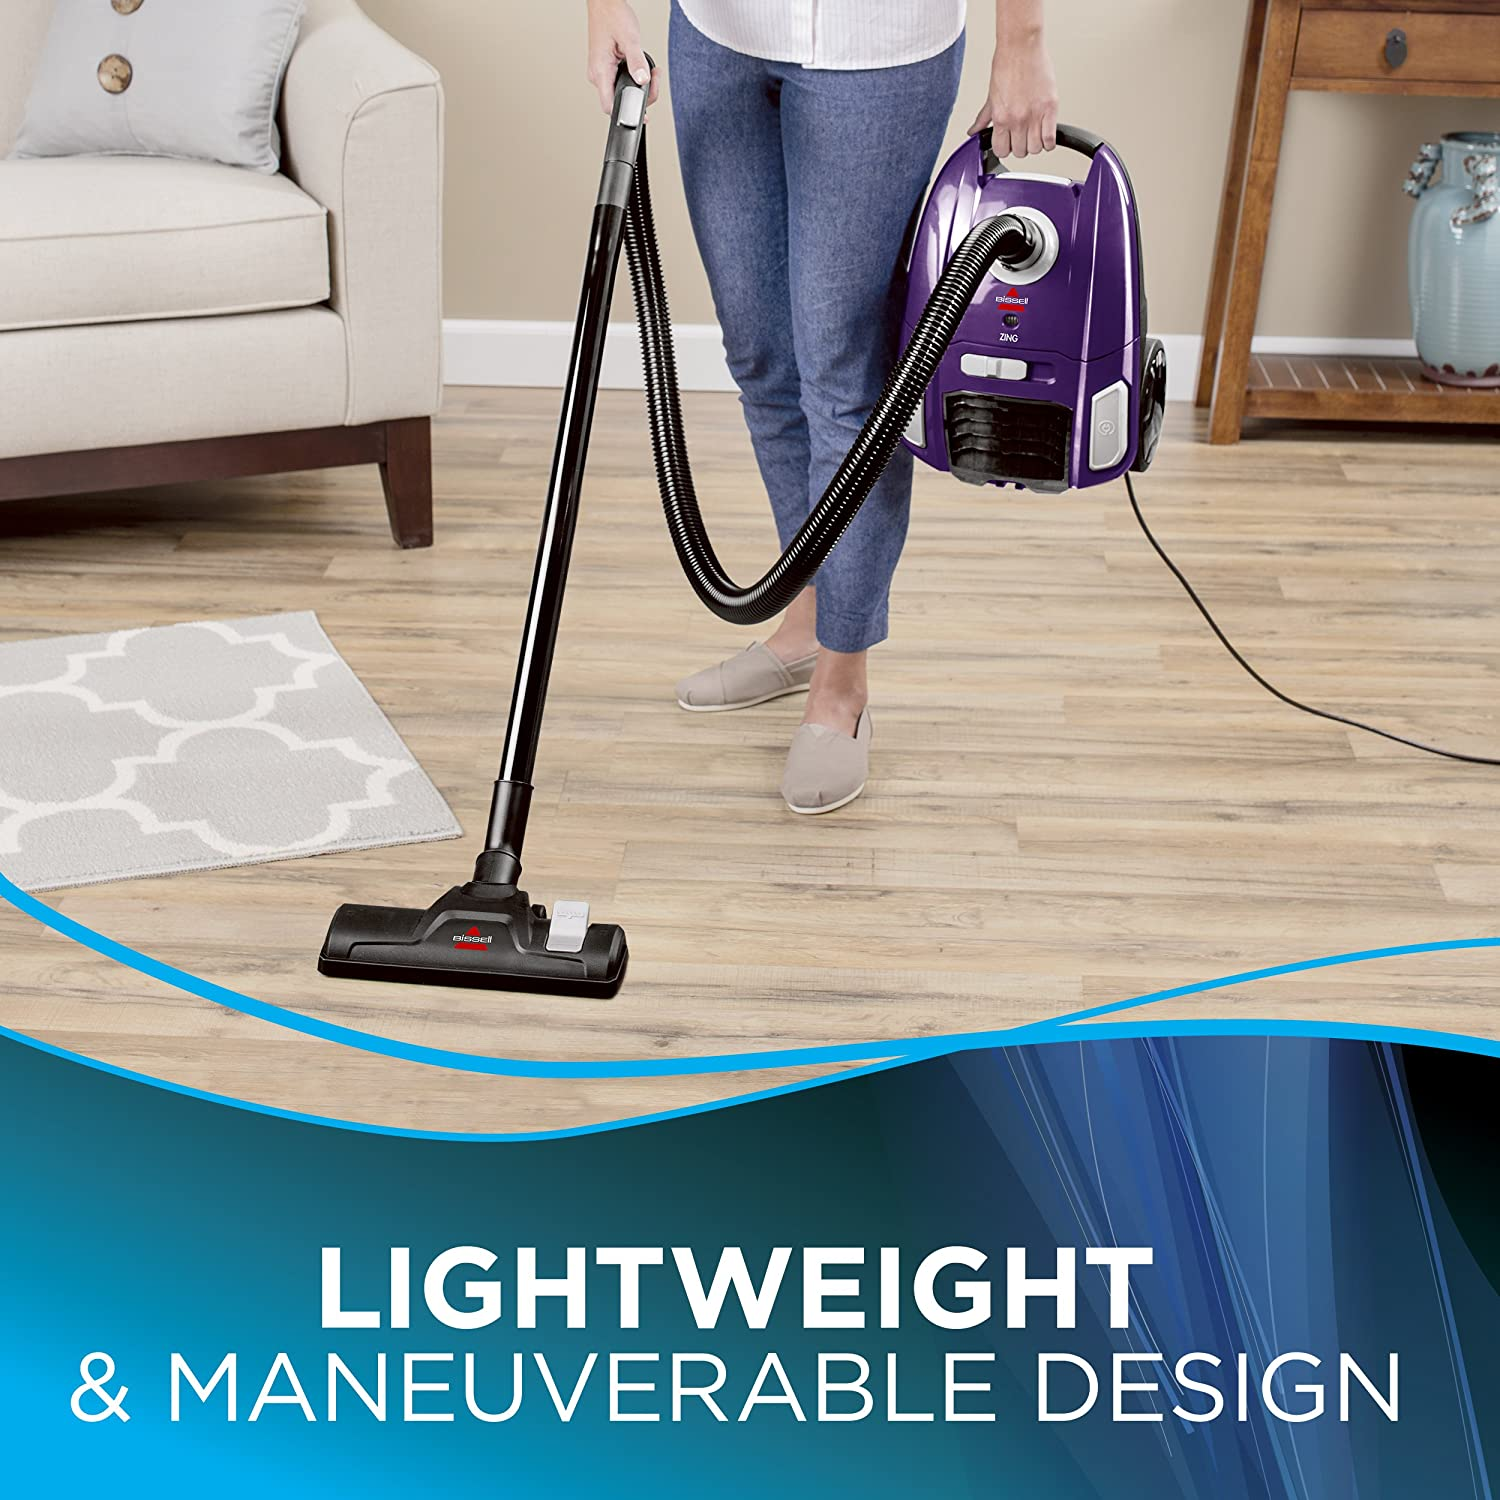 BISSELL Zing Lightweight Bagged Canister Vacuum